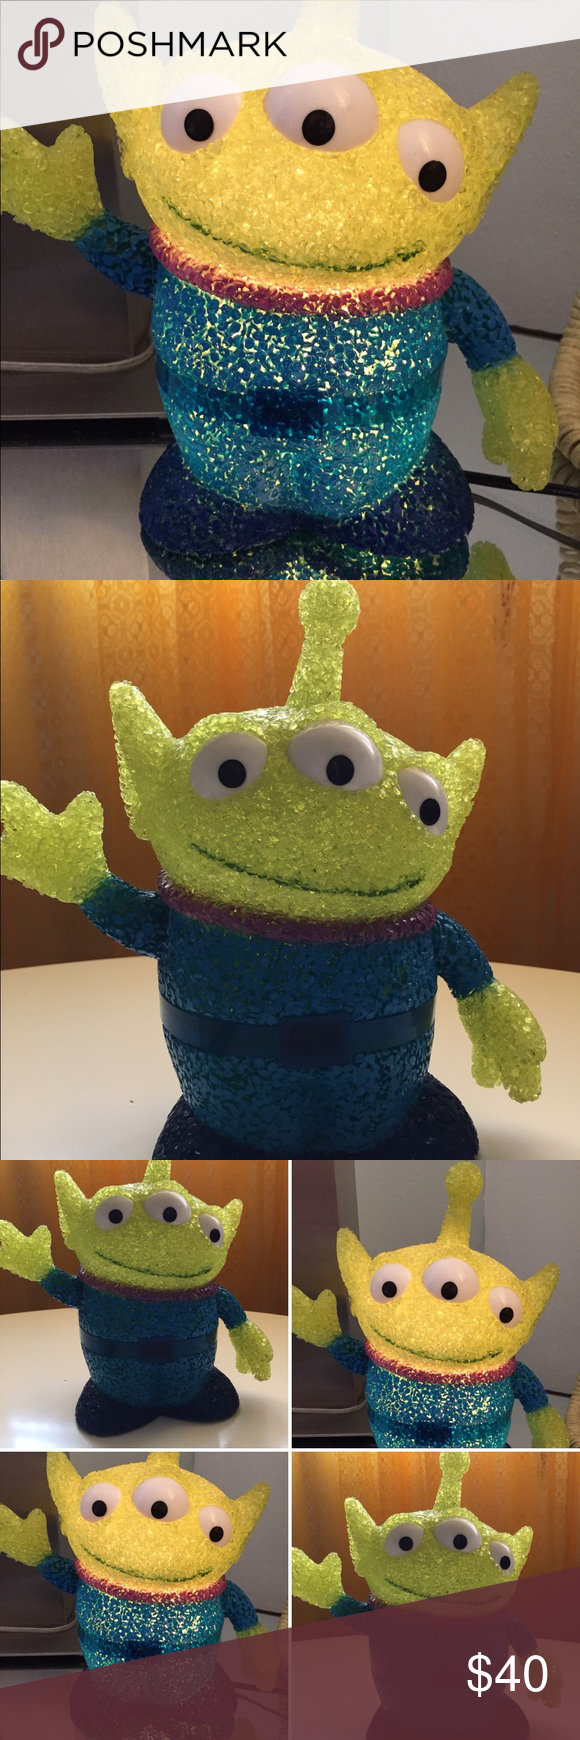 Disney S Pixar Toy Story Alien Lamp For Kids Used In Excellent Condition Disney Other Pixar Toys Toy Story Alien Disney S